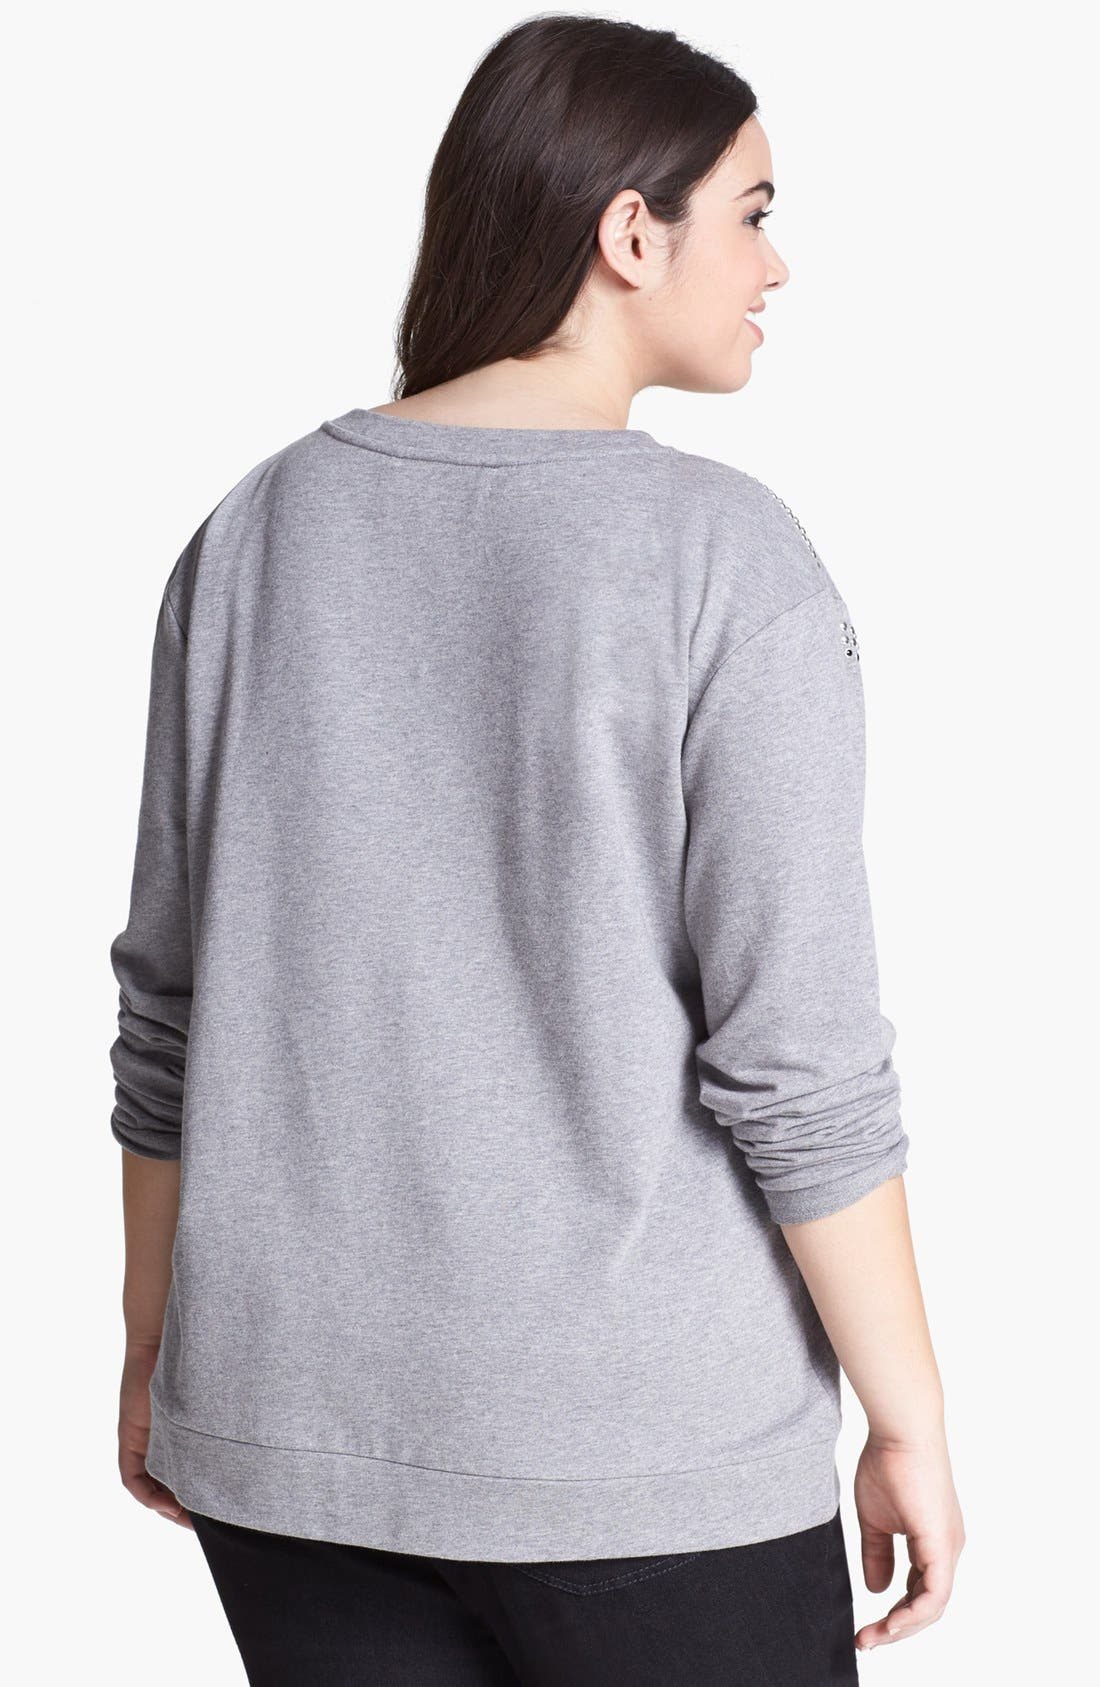 Alternate Image 2  - Two by Vince Camuto Studded Sweatshirt (Plus Size)